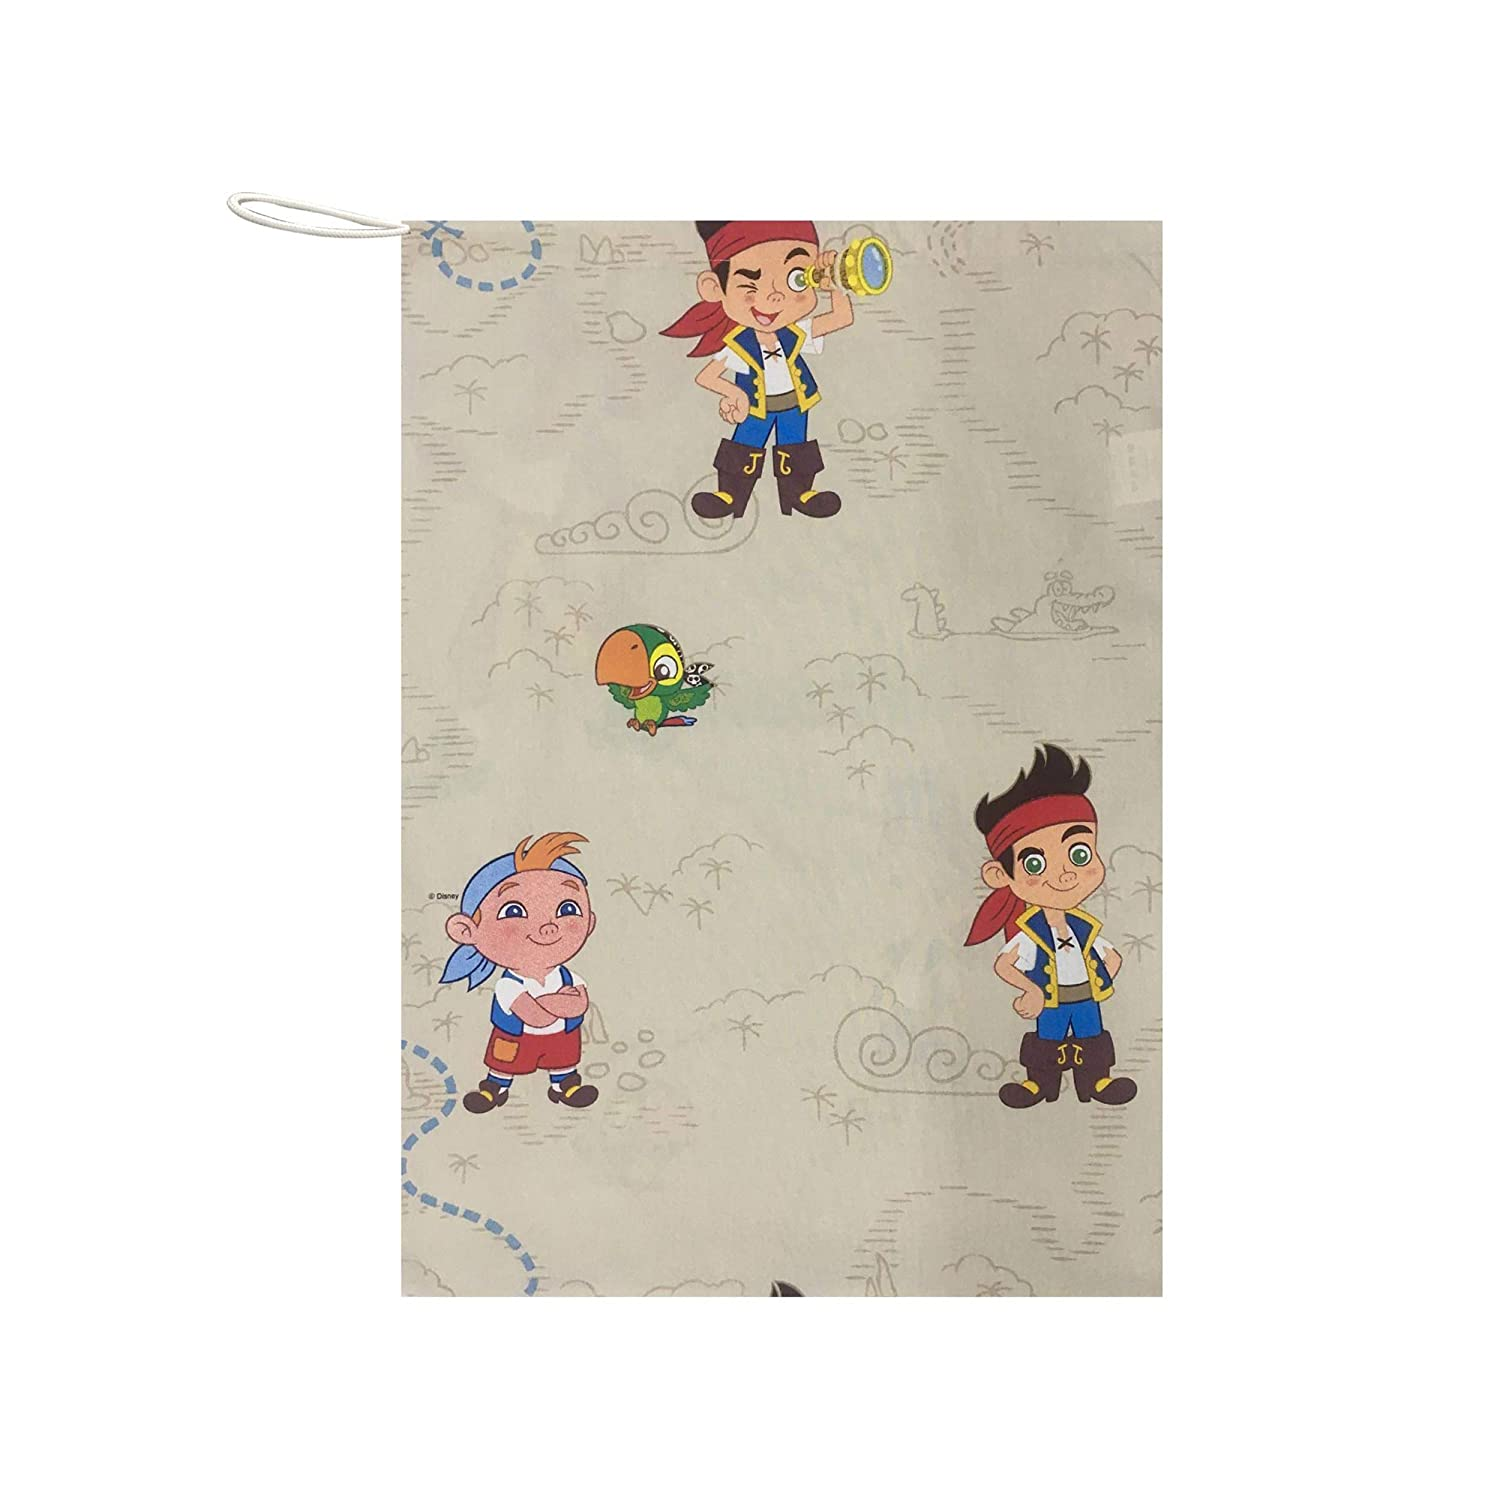 Drawstring Bag For Children Preschool 100/% Made In Italy Perfect For Containing The Nap Sack In Daycare Panini Tessuti Size 46 X 60 Cm